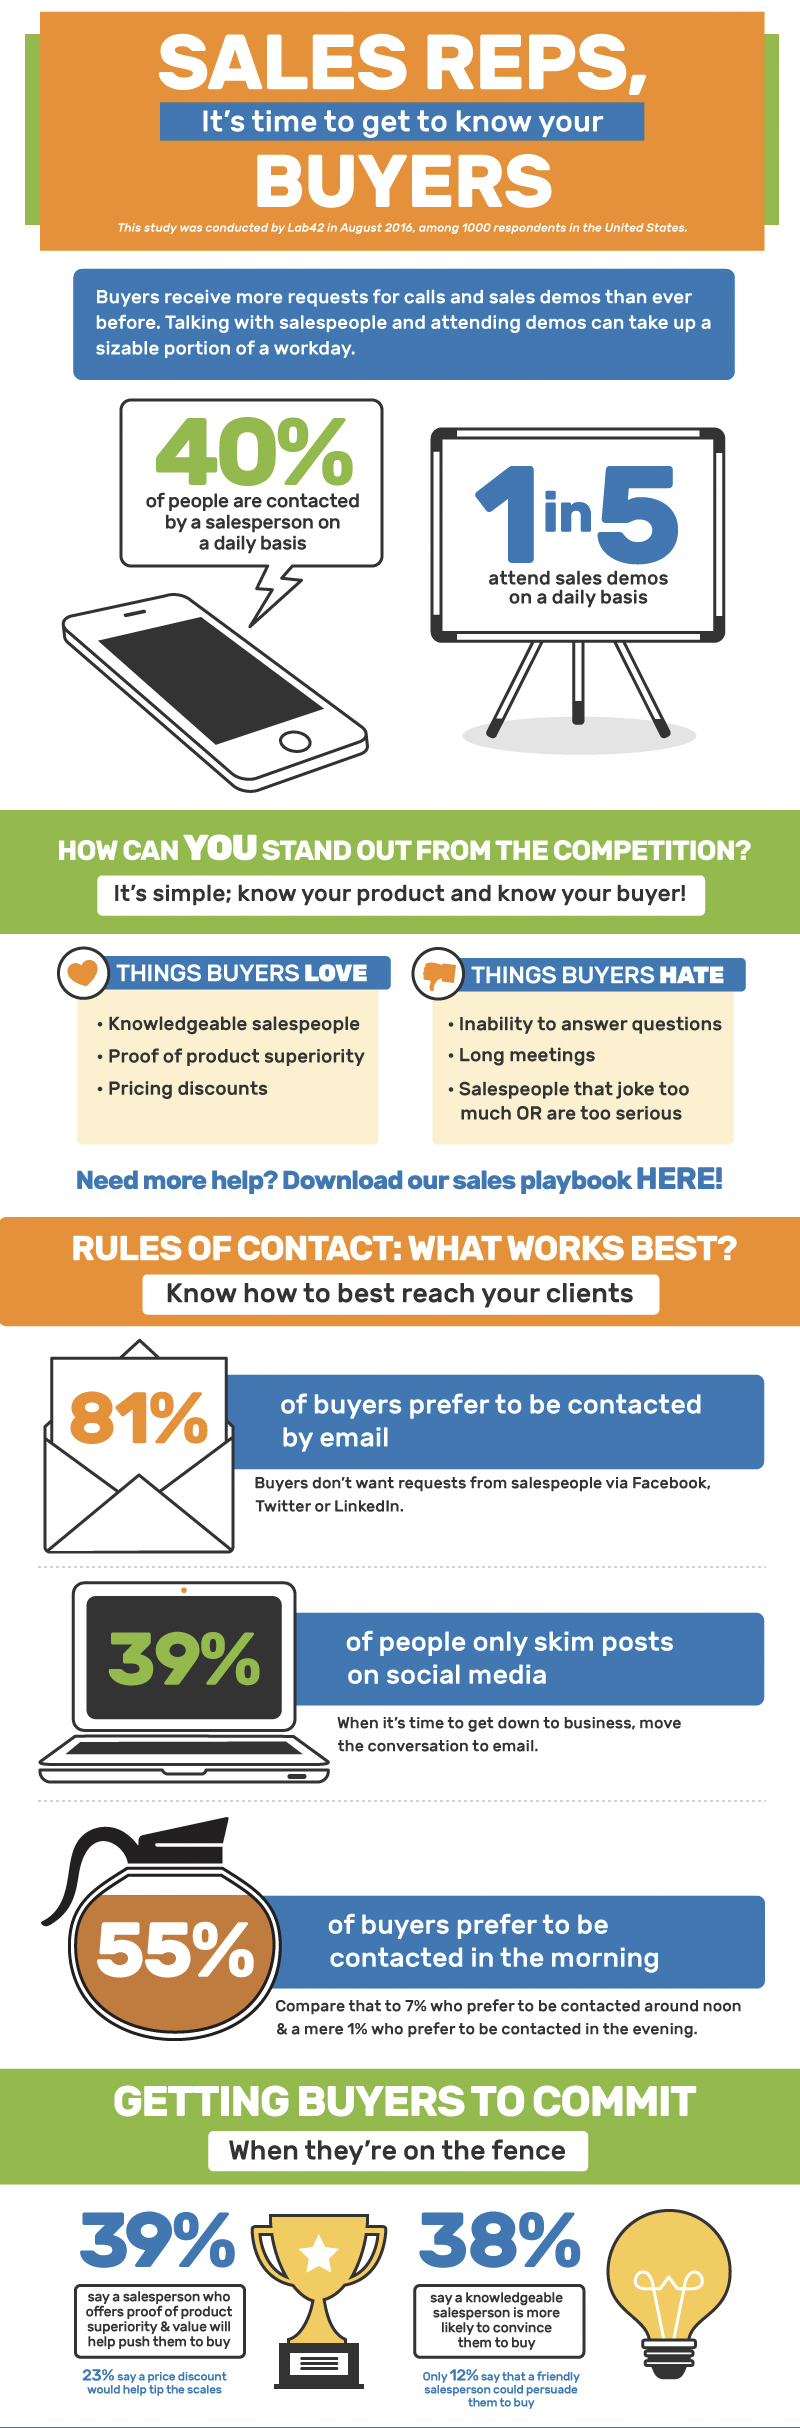 joinme-hubspot-infographic.png